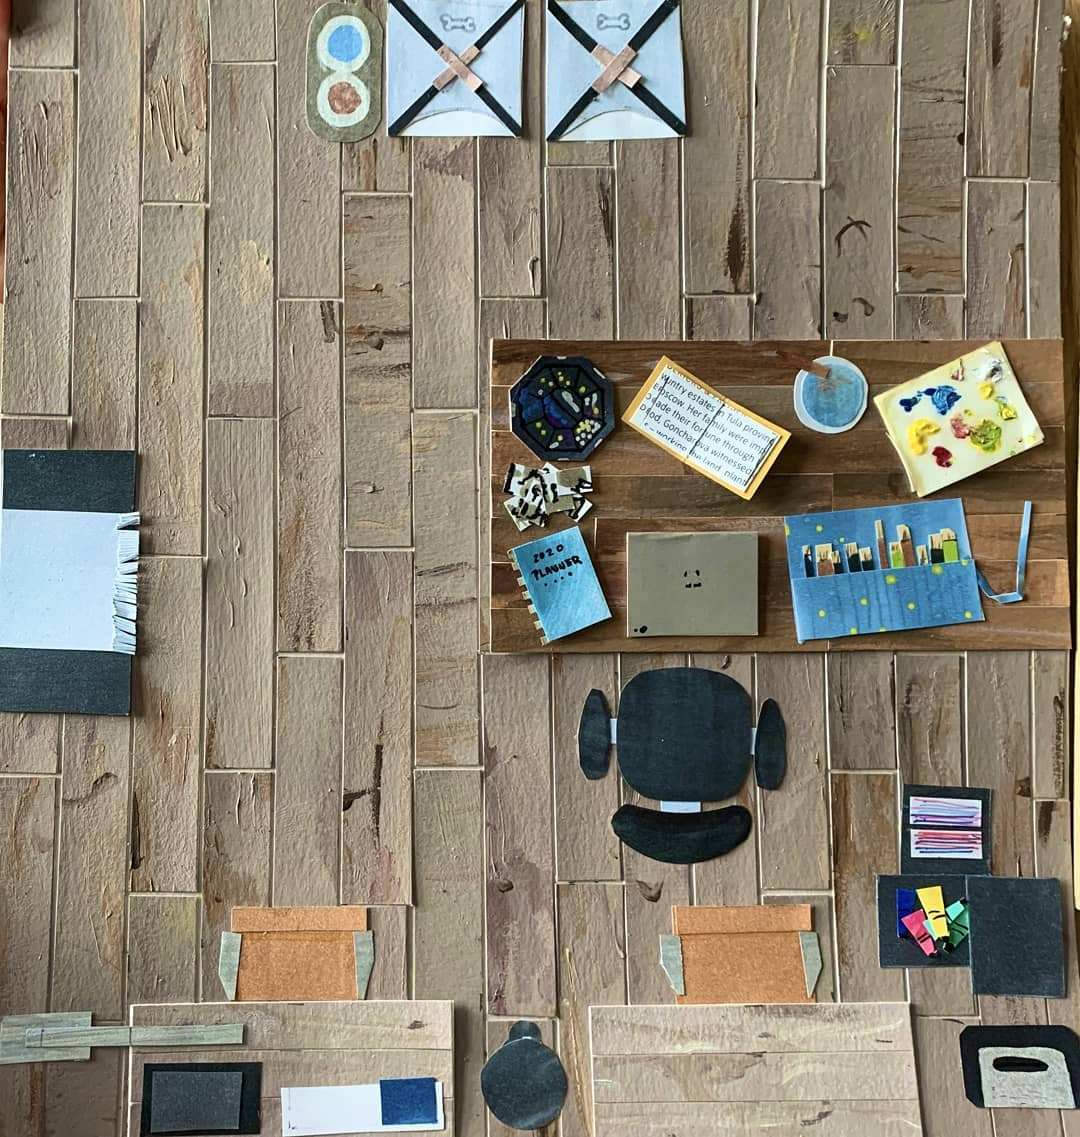 Foundation student Gabby de Castro-Olano's overhead view of her workroom created for the Light, Color, and Design Lab (via @PrattFoundation/Instagram)